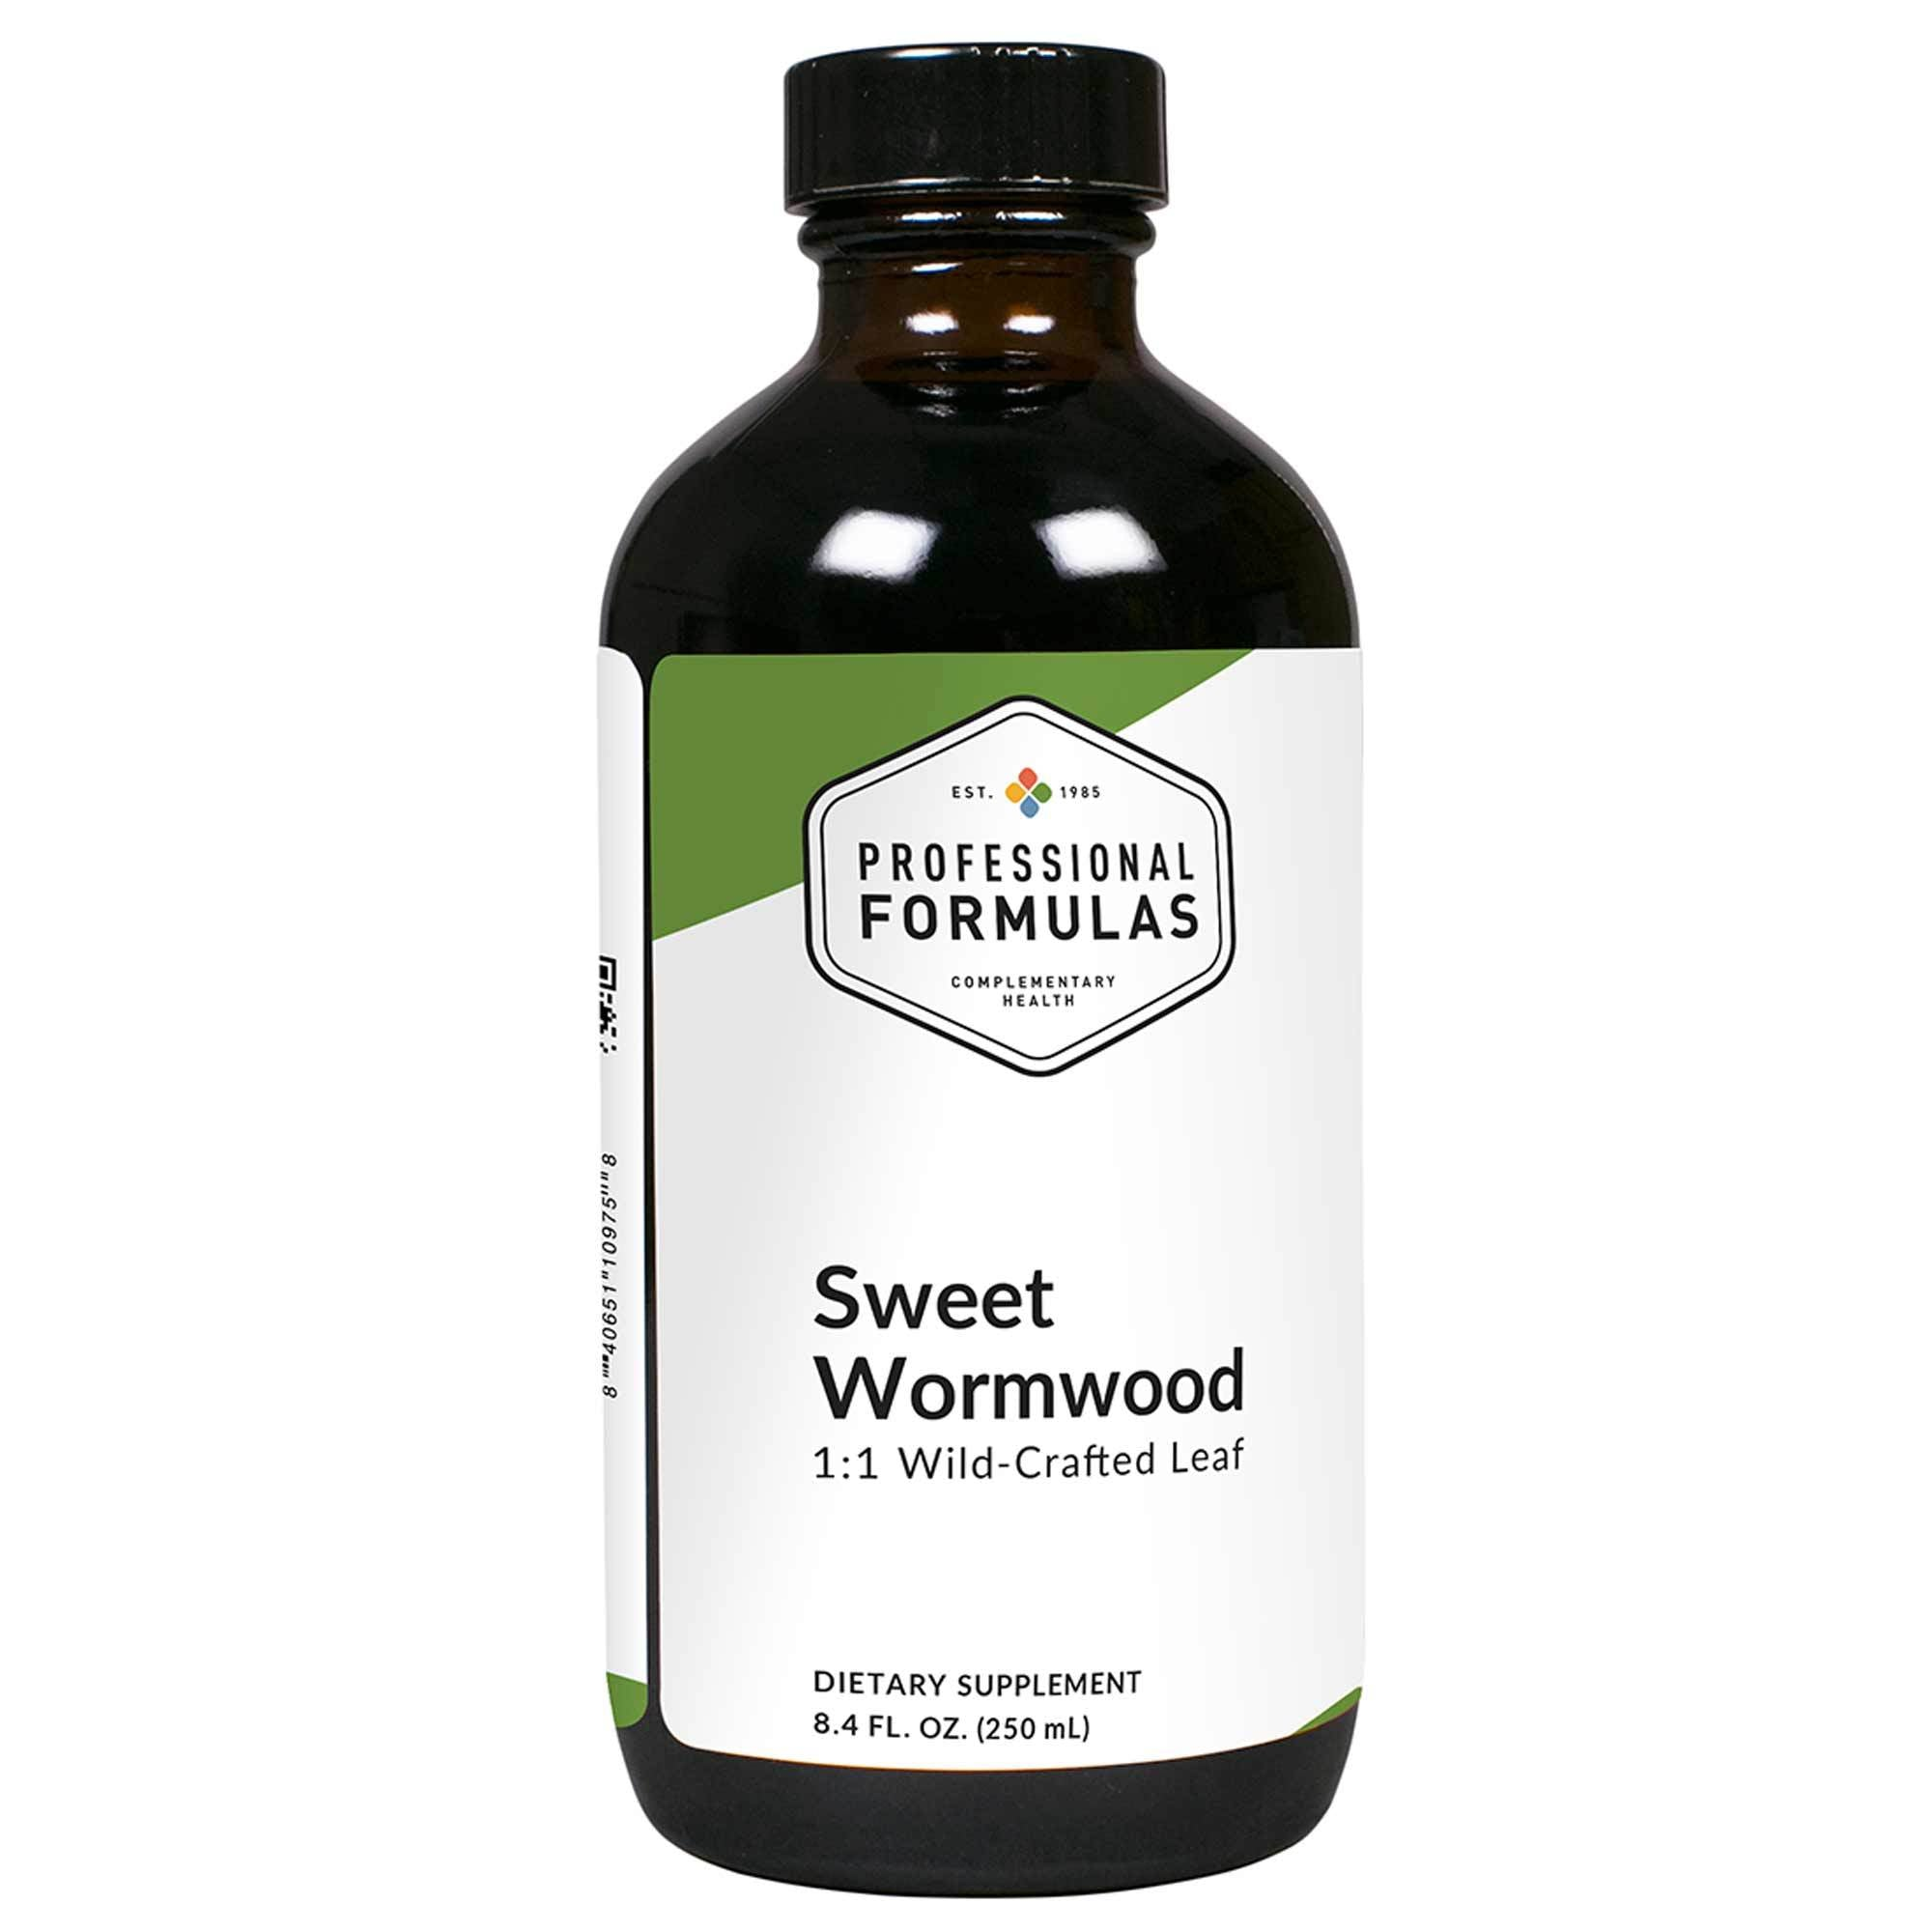 Sweet Wormwood-Artemisia annua 250ml/BP